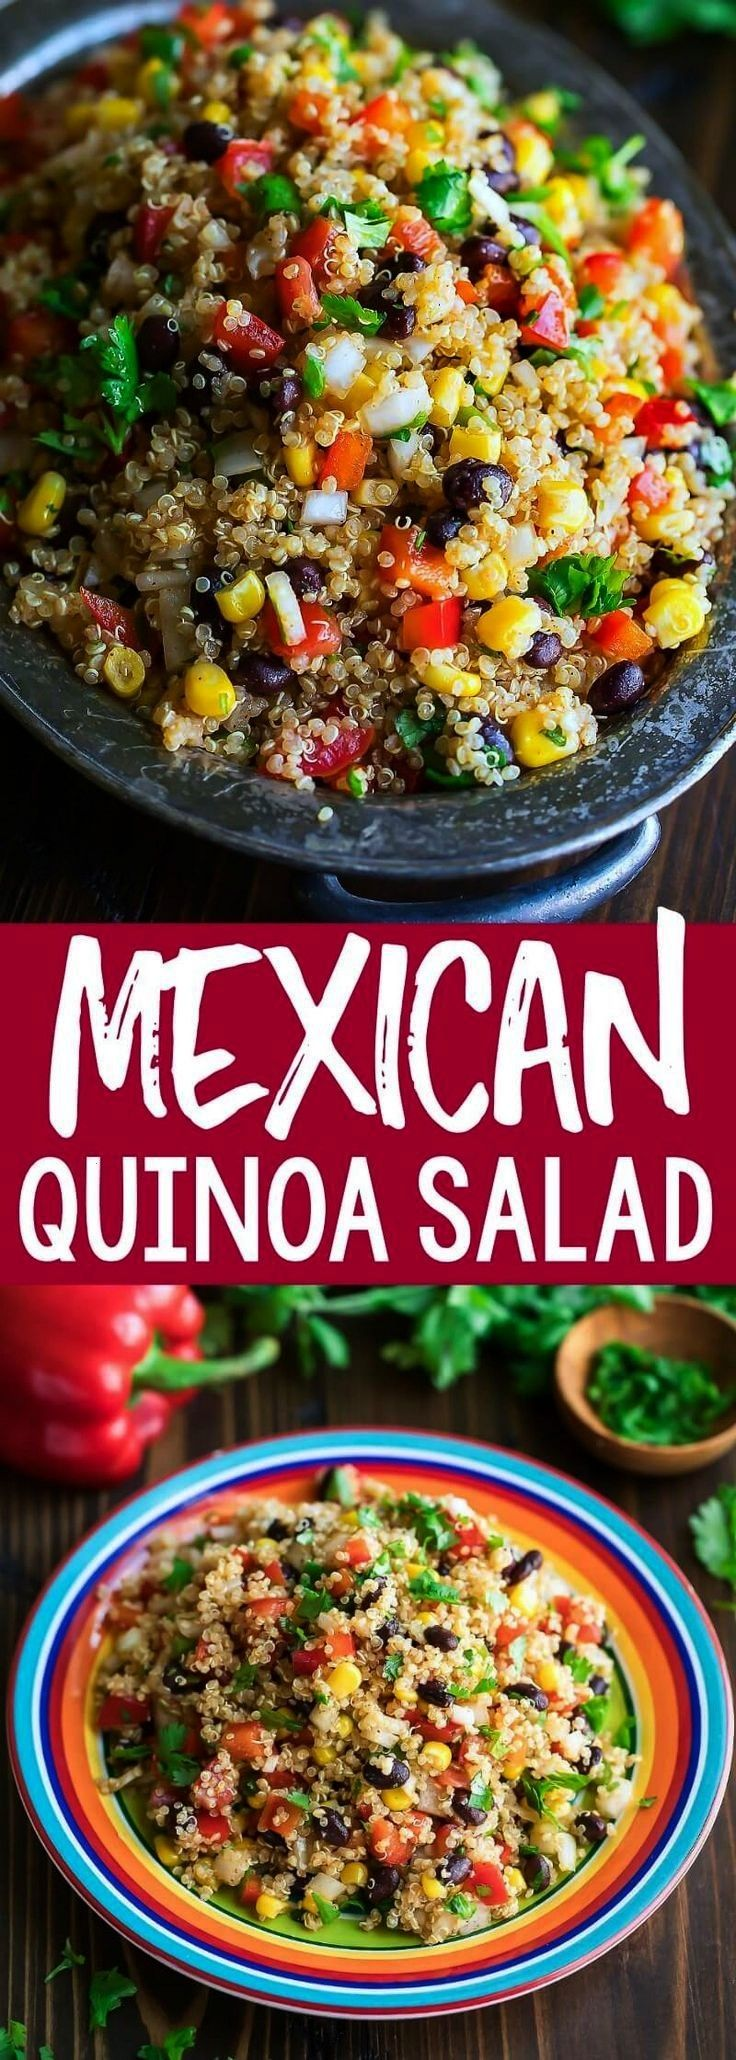 healthy Mexican Quinoa Salad is a quick, easy, and gloriously make-ahead di... This healthy Mexican